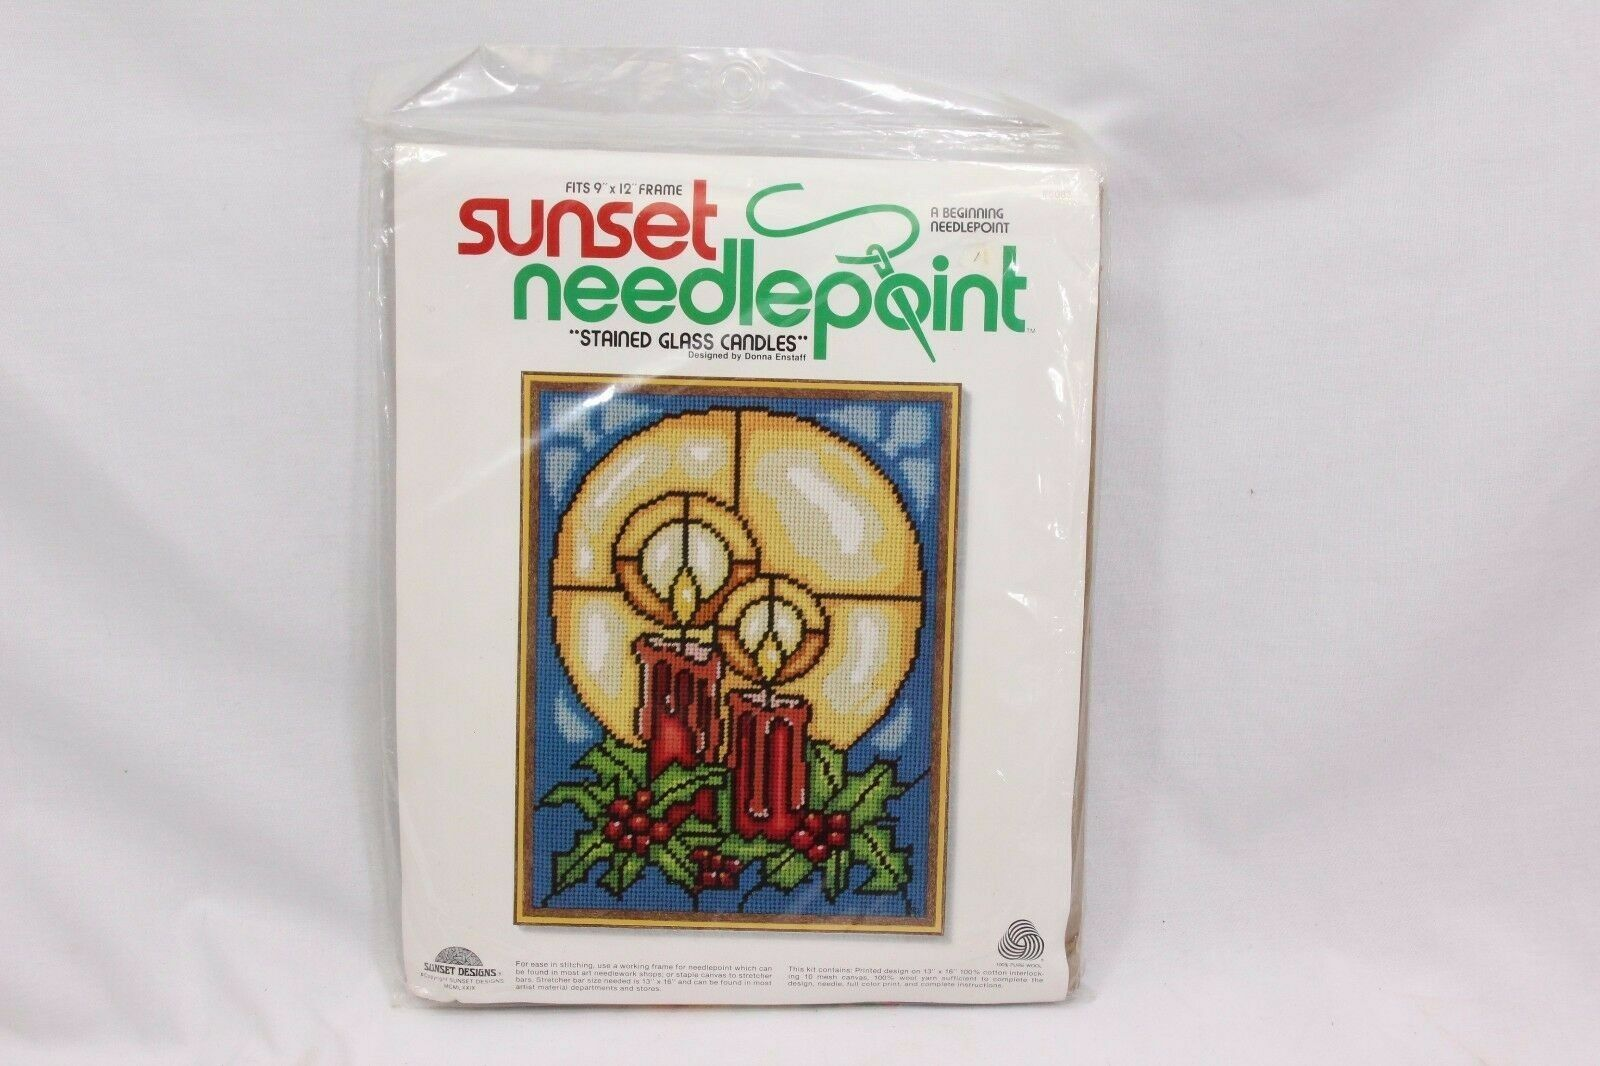 Sunset Xmas Needlepoint Stained Glass Candles 6083 - $32.33